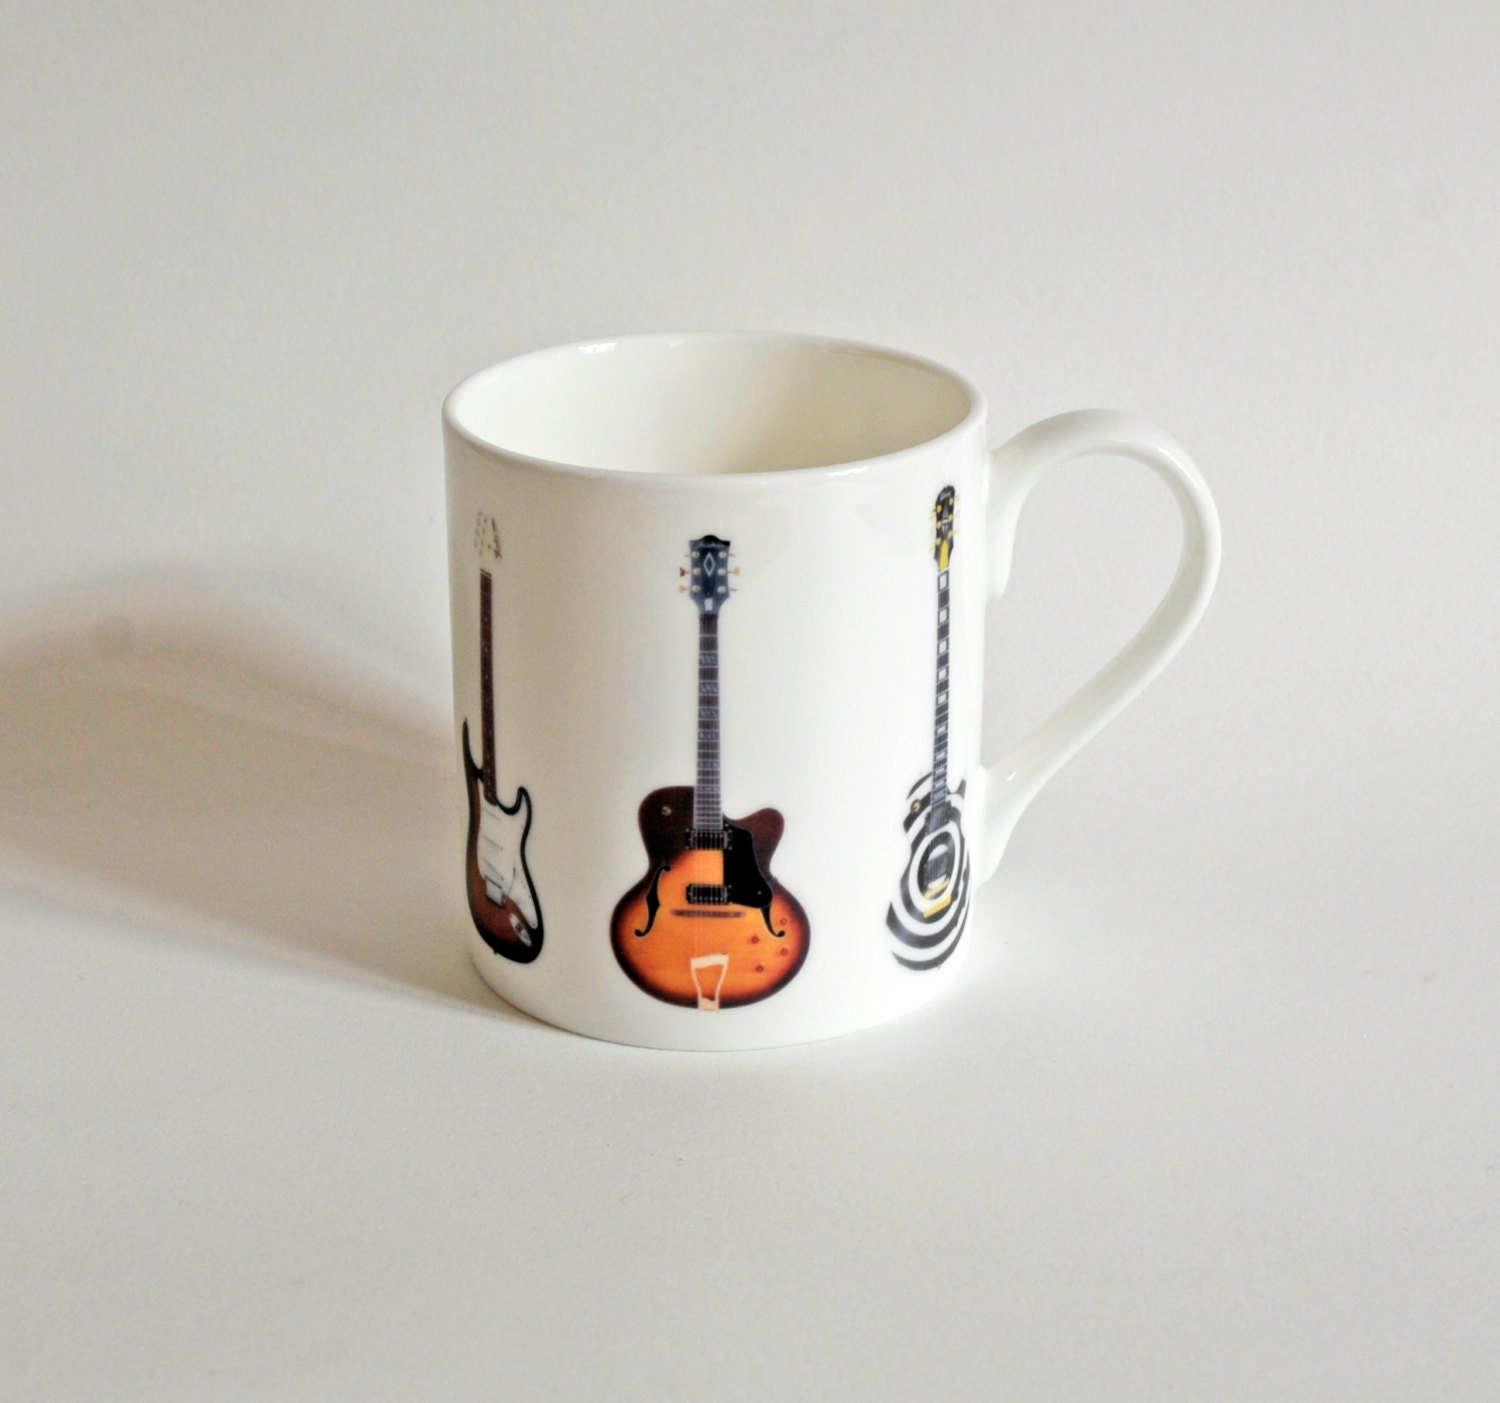 guitars ceramic mug design